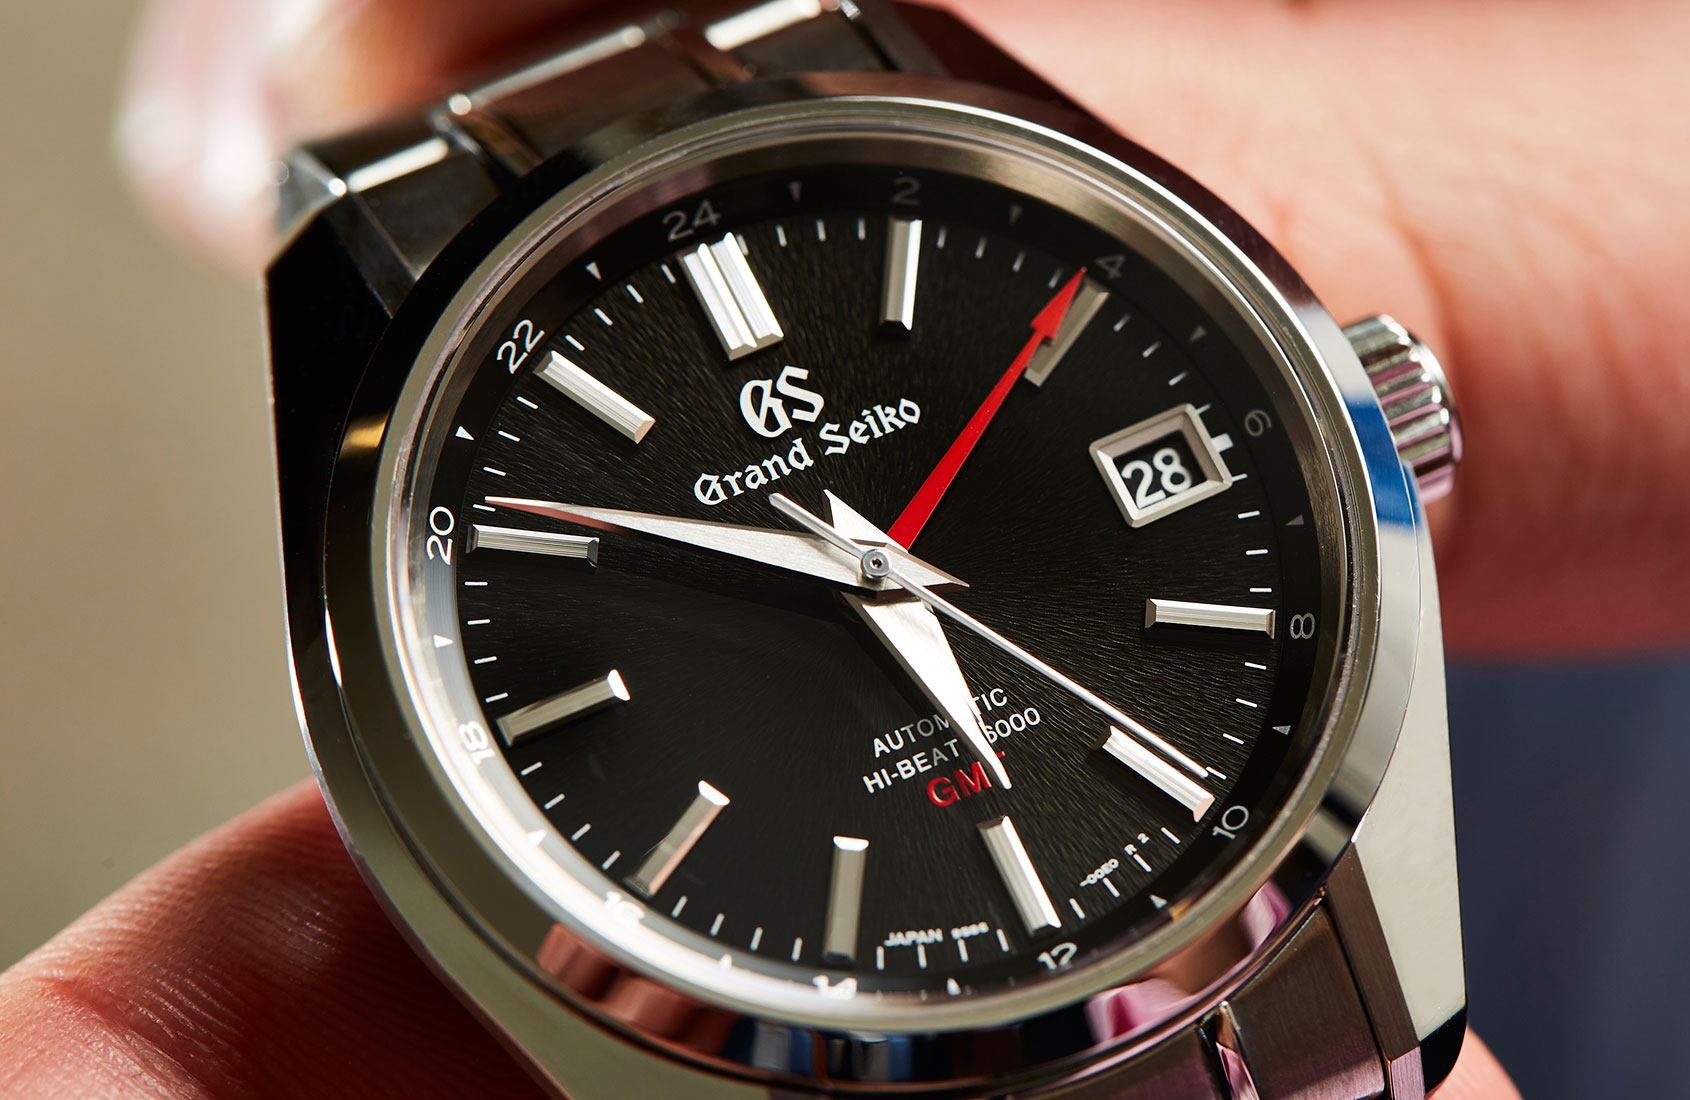 VIDEO: One watch to do it all – The Grand Seiko Hi-Beat ...